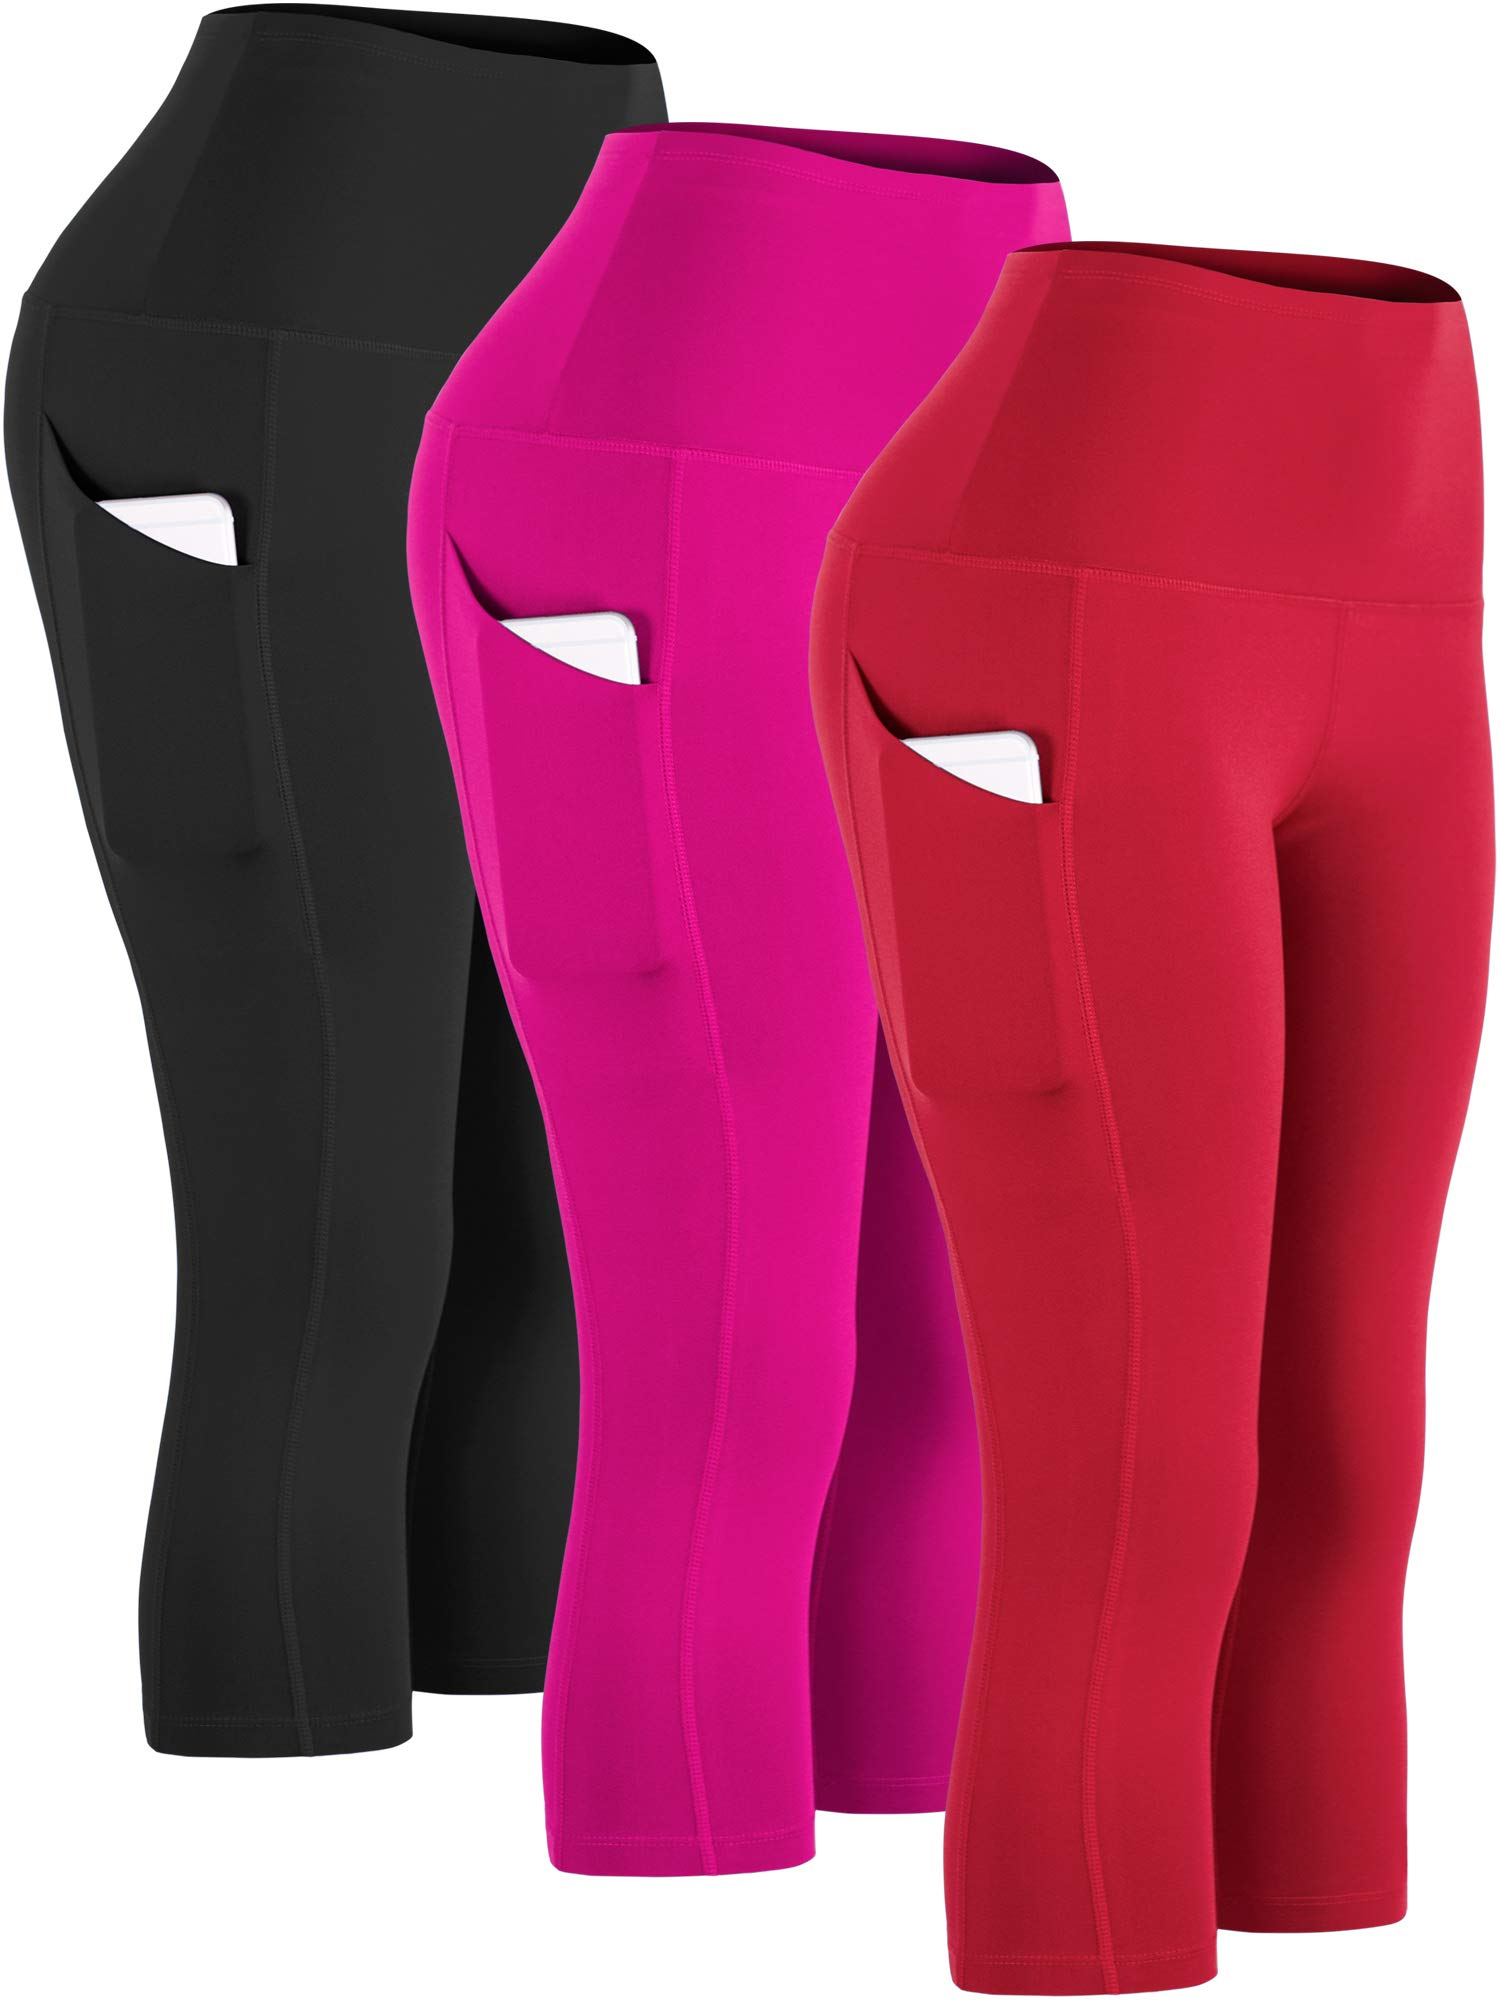 Cadmus Womens High Waist Workout Legging Capris for Yoga w Side Pockets,1109,Black & Rose Red & Red,Small by Cadmus